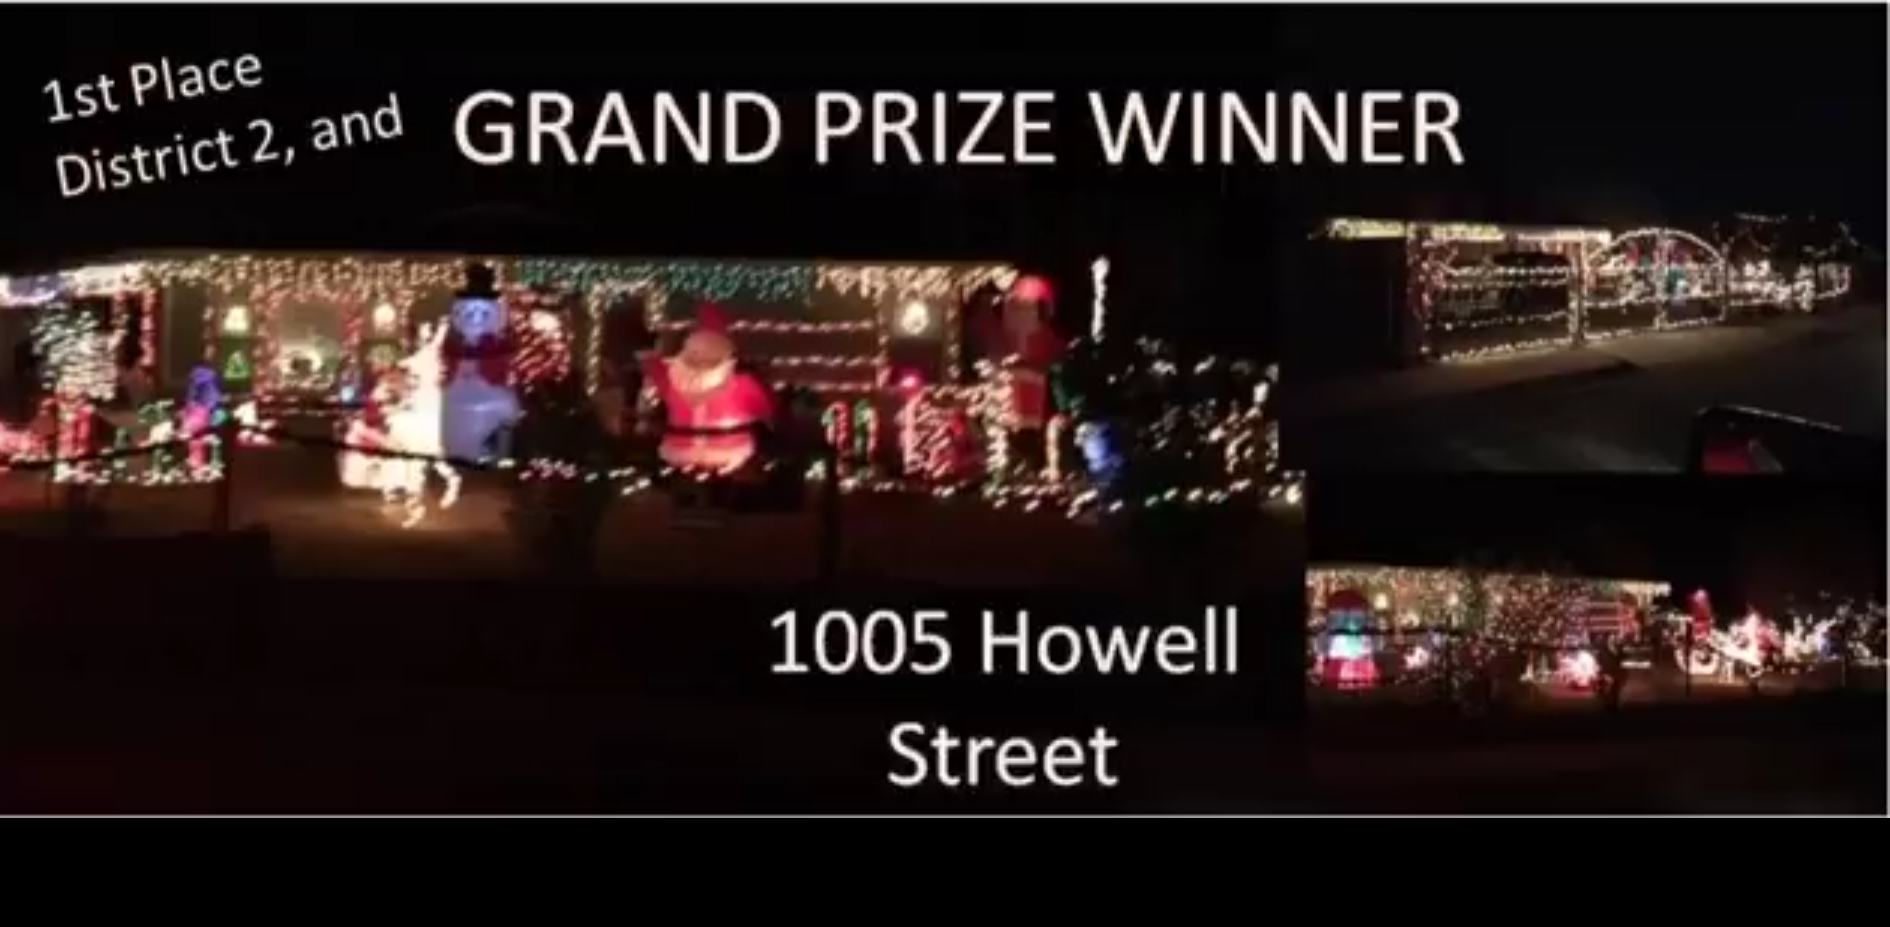 kbest christmas lights contest sponsored by premiere companies and sm energy results and winners named